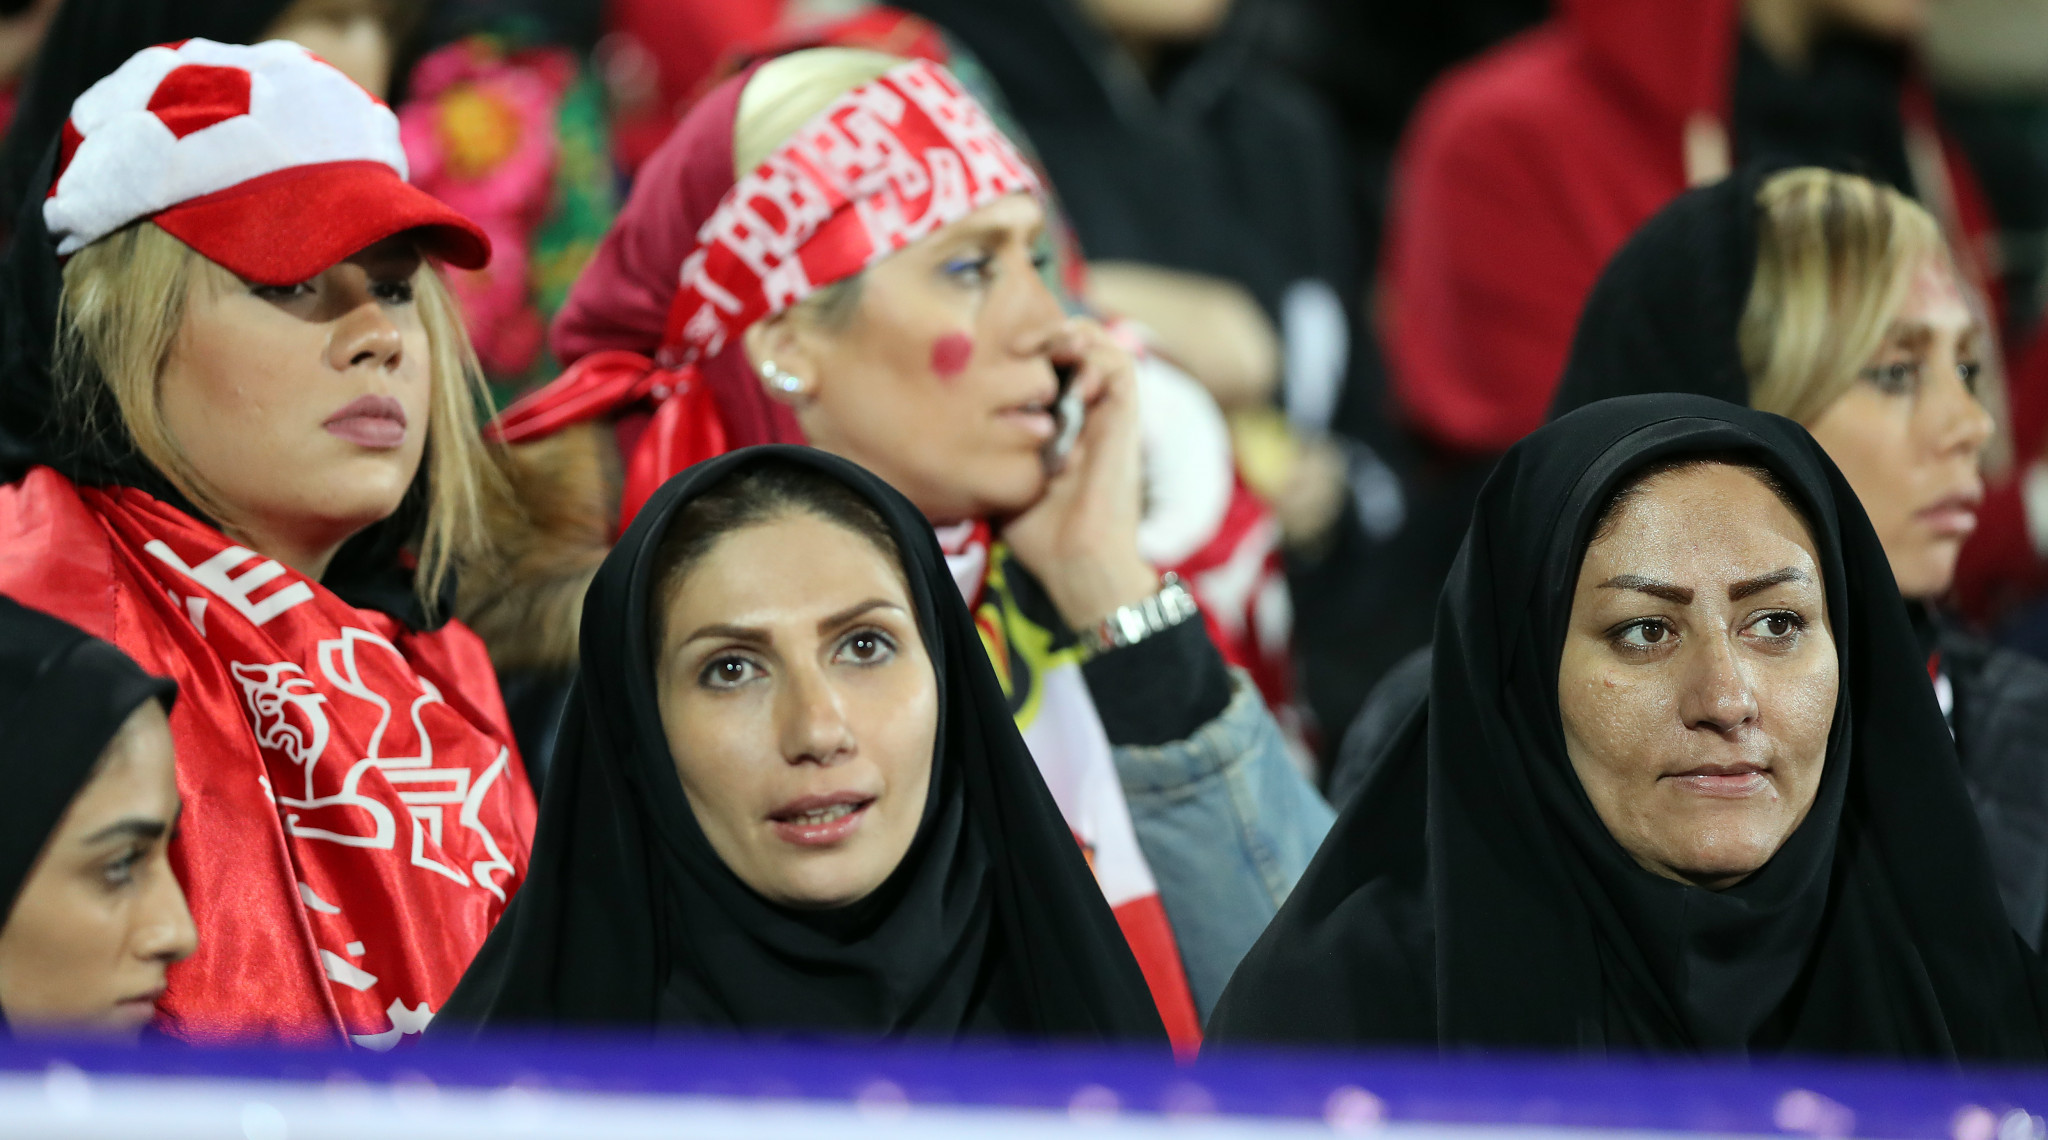 Female fans were allowed to watch the AFC Champions League final match in Tehran between Persepolis and Japan's Kashima Antlers in November 2018 ©Getty Images